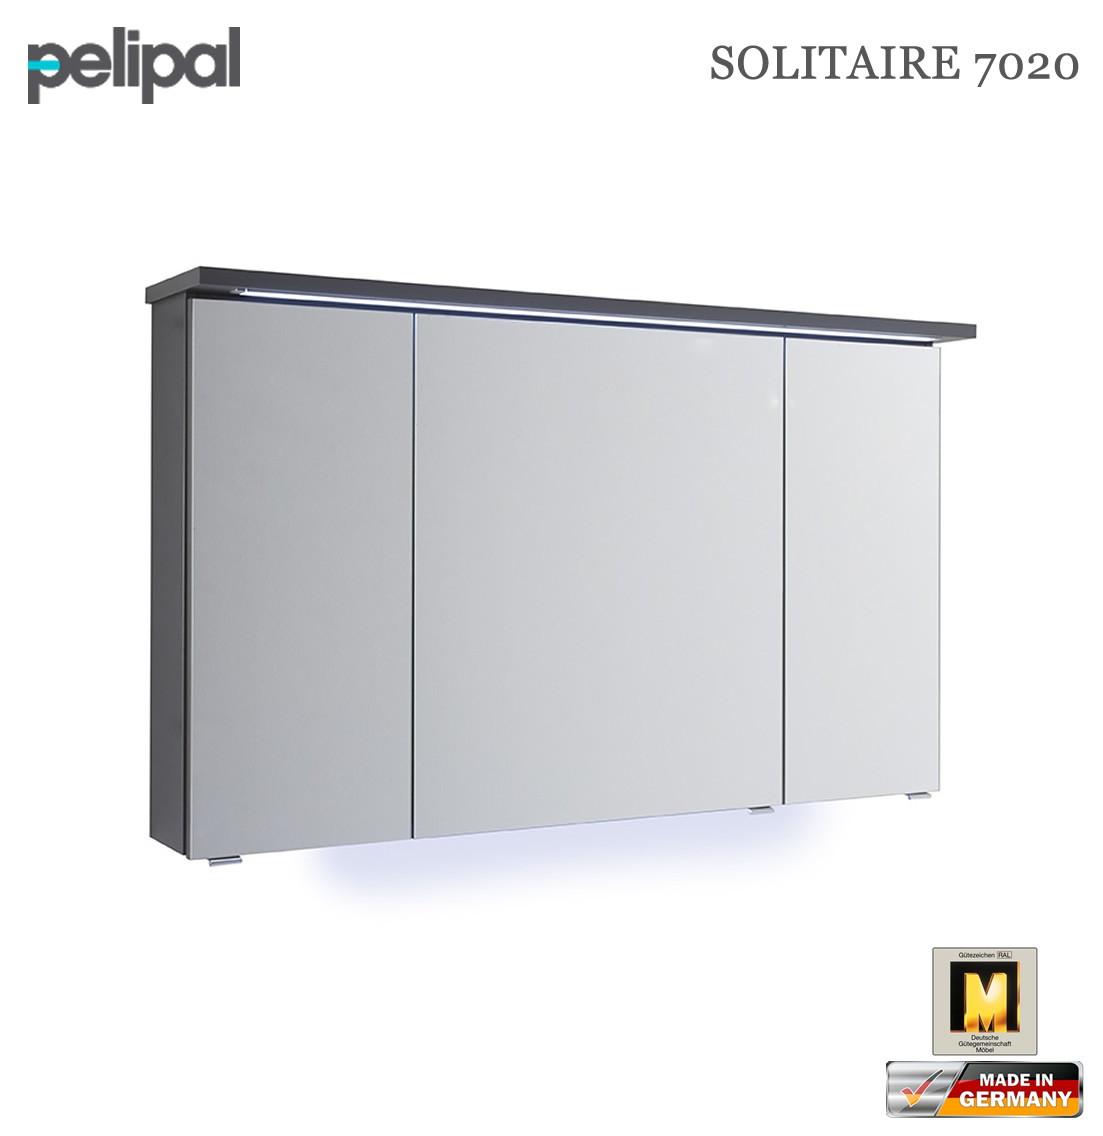 pelipal solitaire 7020 spiegelschrank 120 cm 7020 sps 02 impuls home. Black Bedroom Furniture Sets. Home Design Ideas